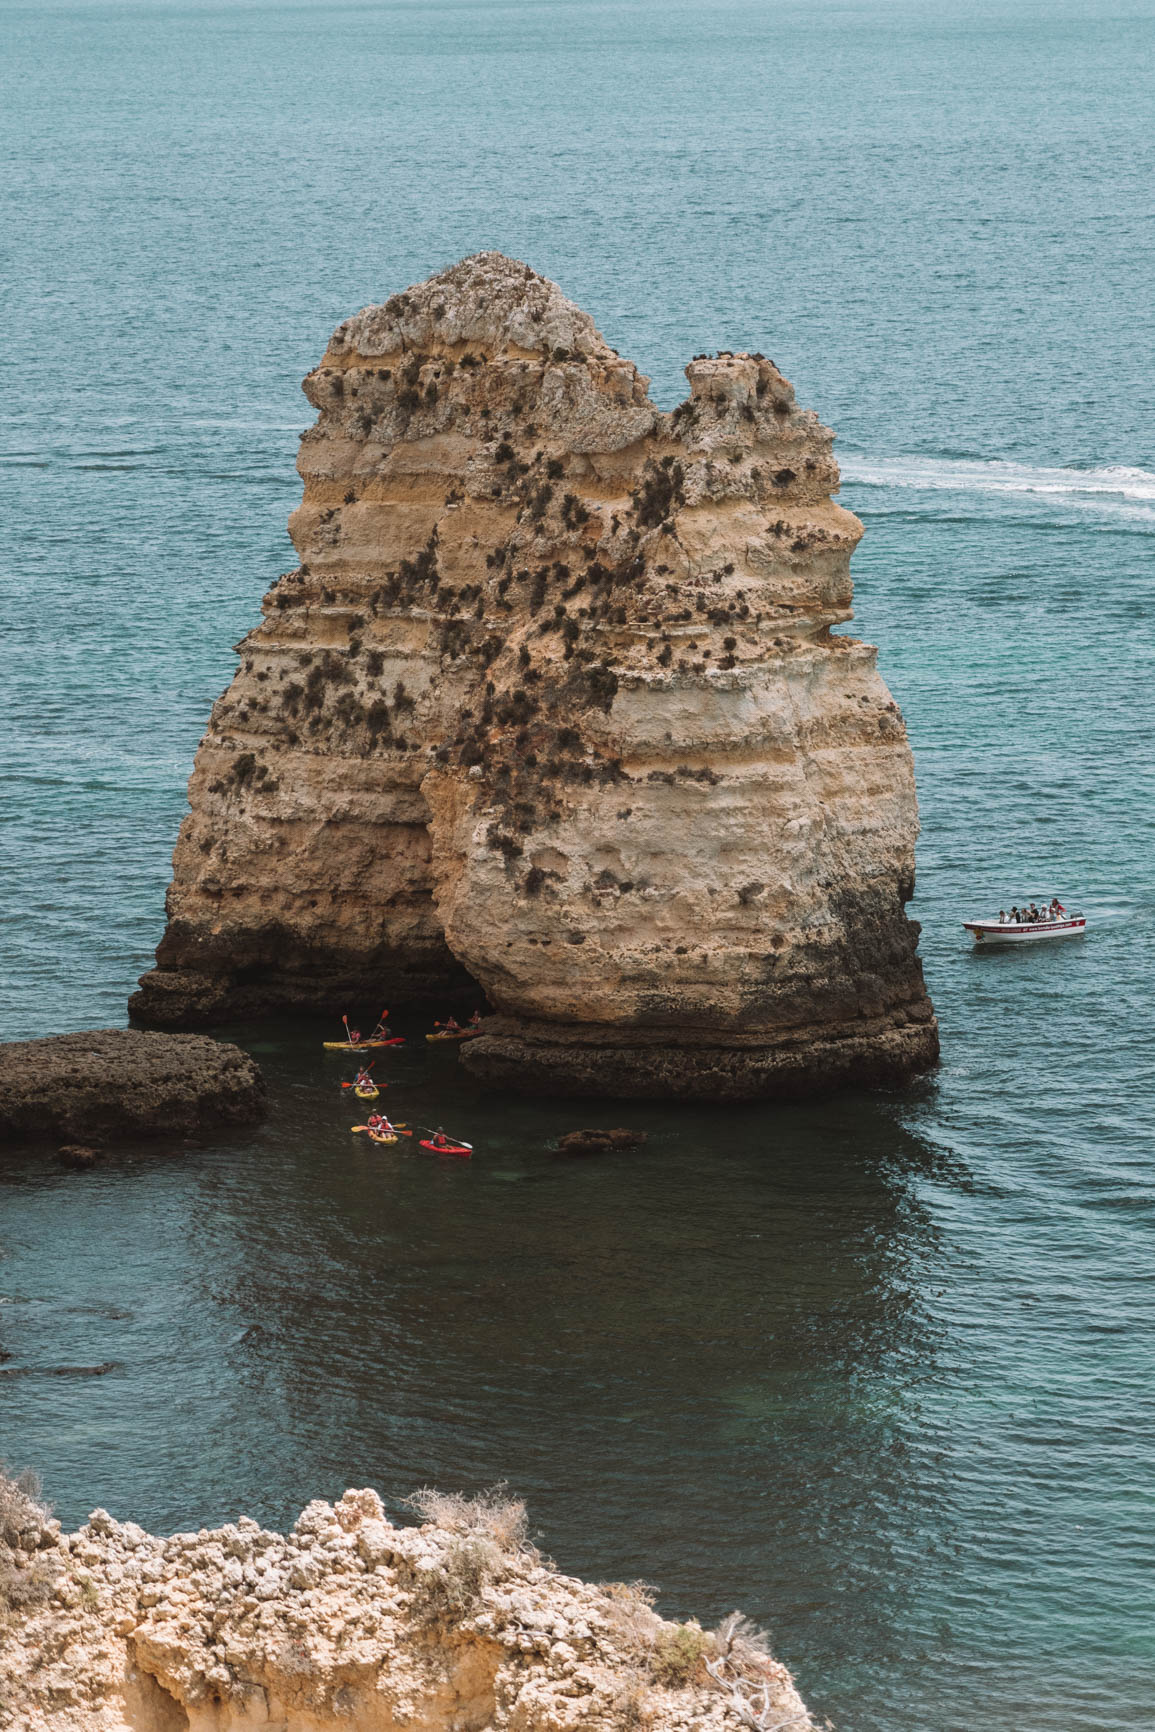 Kayaking in Lagos - Fun things to do in Lagos Algarve Portugal #Portugal #Europe